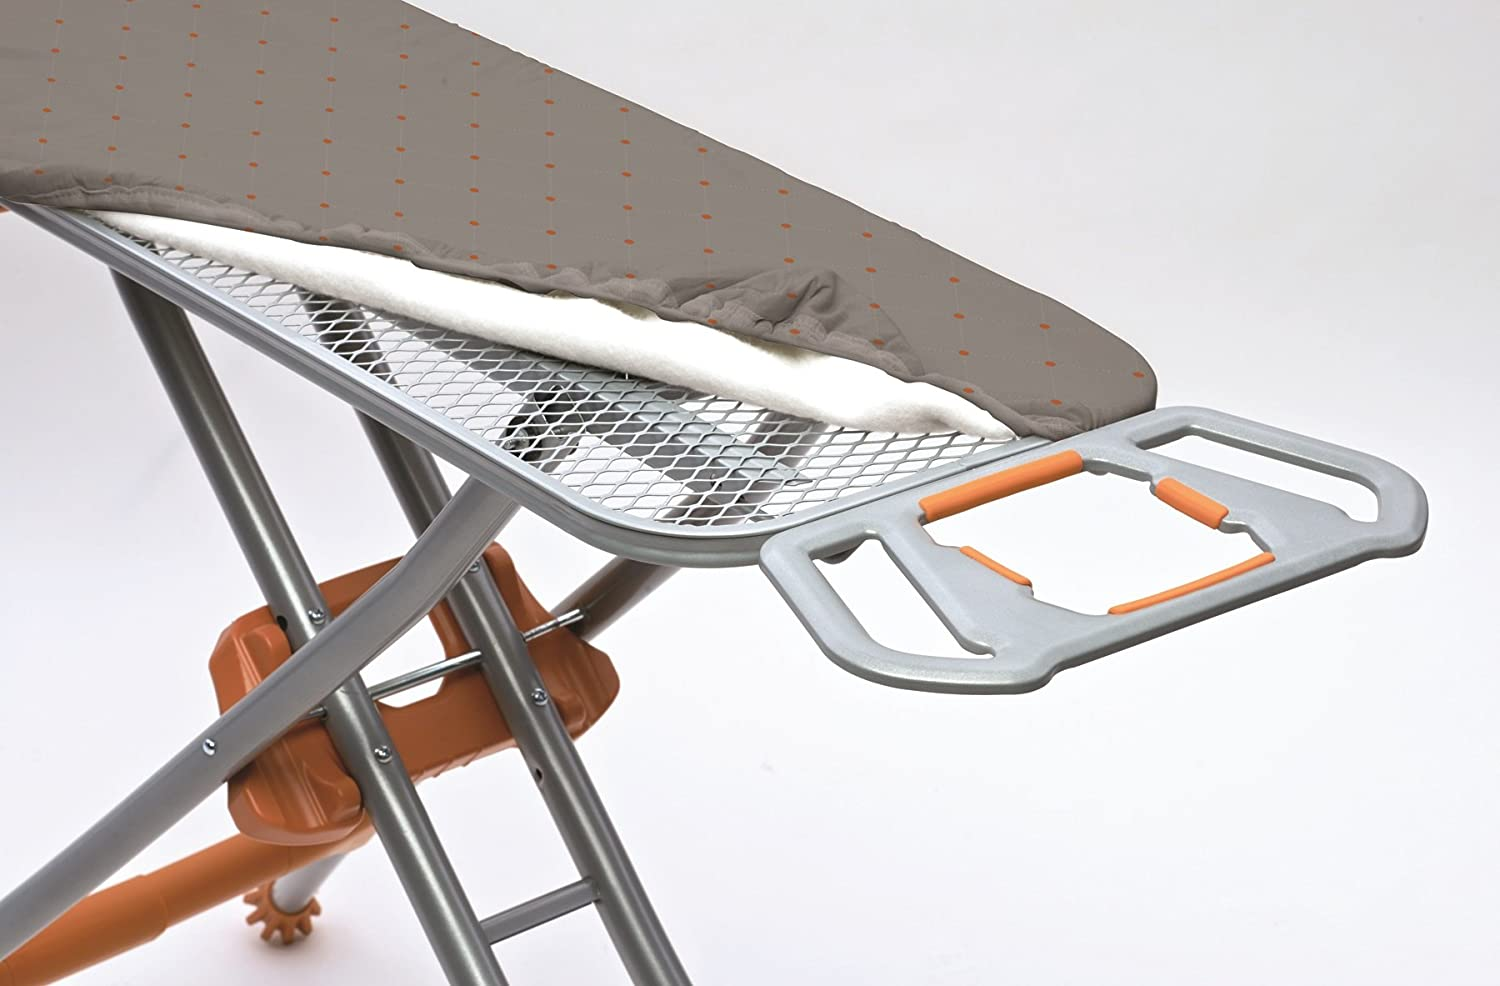 Homz Durabilt DX1500 Premium Steel Top Ironing Board with Wide Leg Stability Adjustable up to 39.5